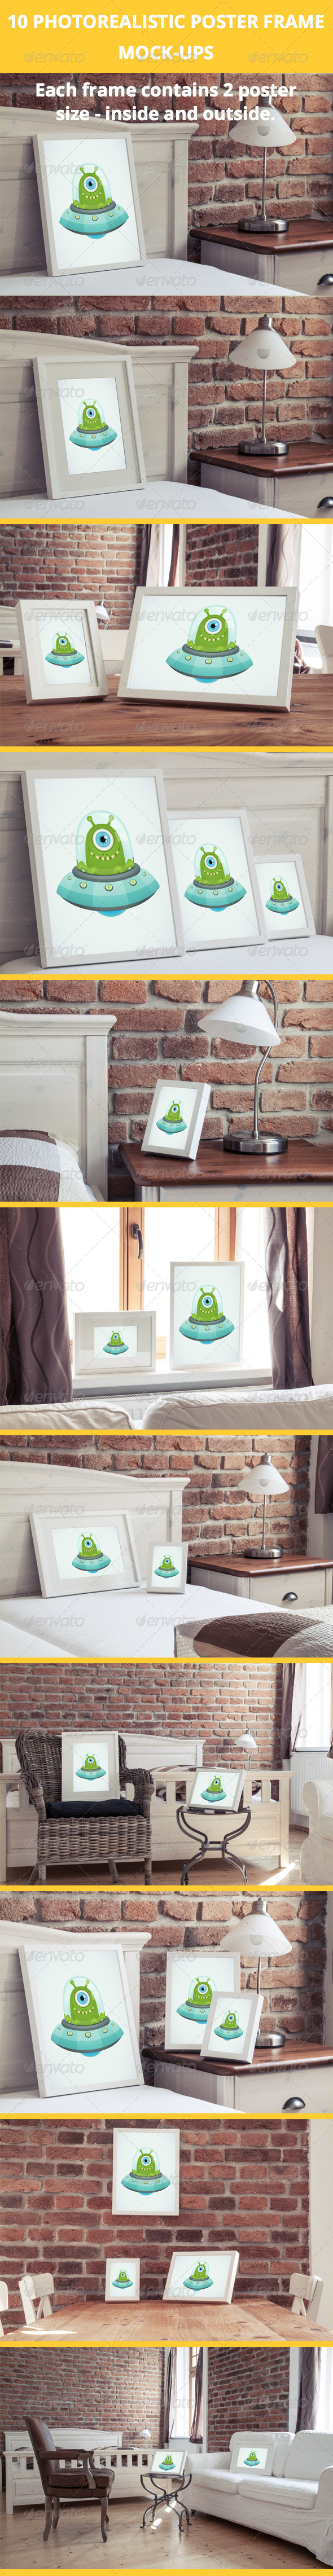 GraphicRiver 10 Poster Frame Mock-Ups in luxury interior 7170518